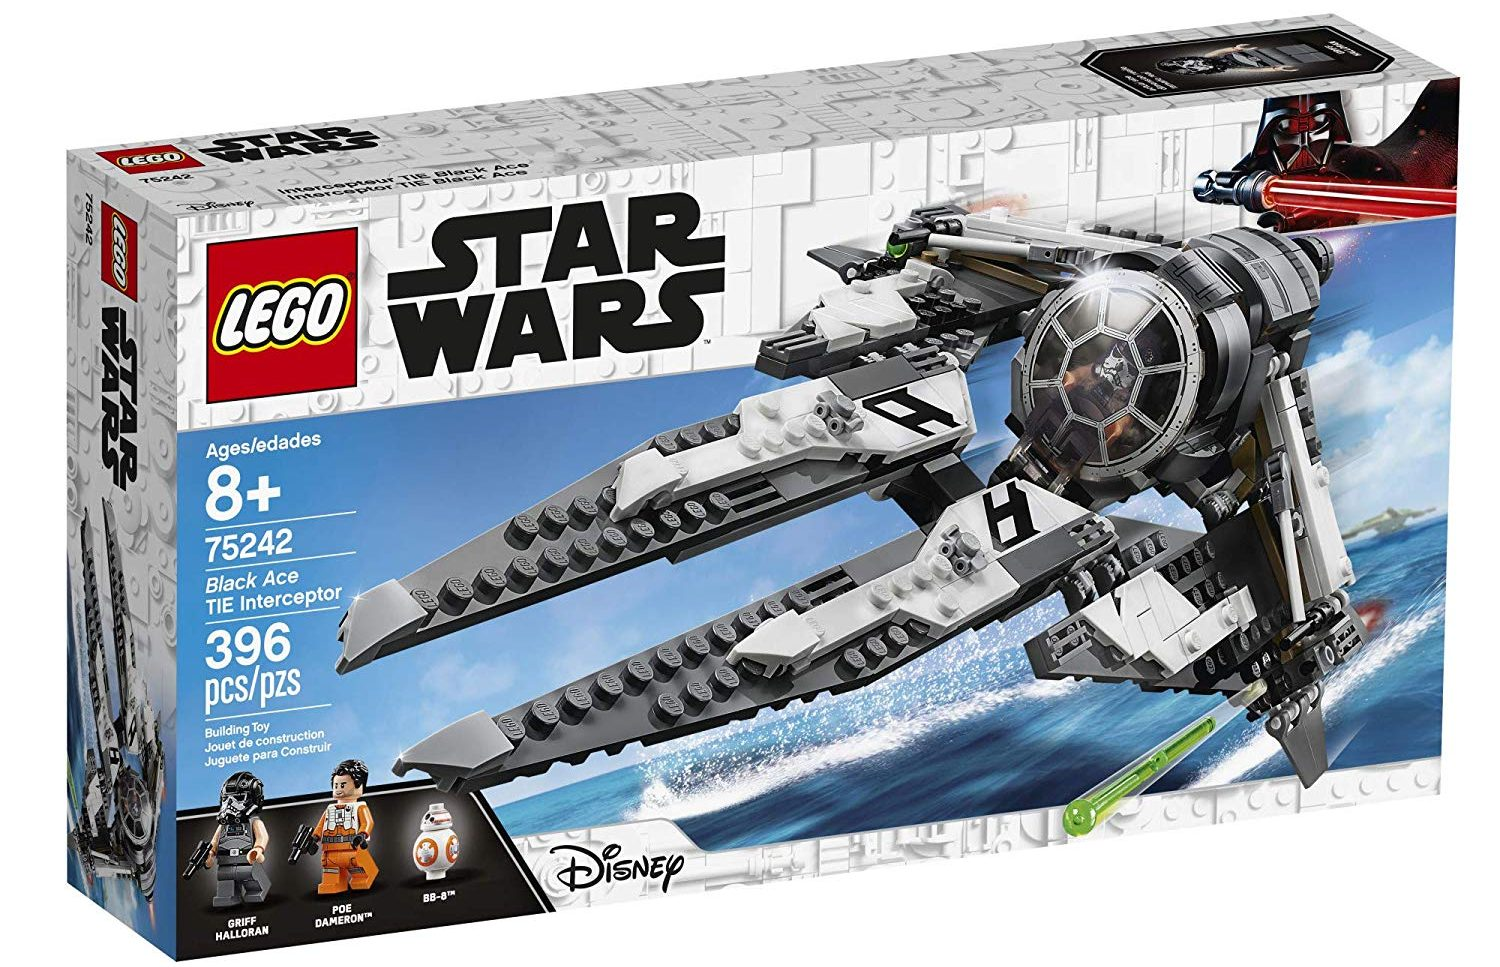 Lego Grab Sets On At Amazon Star Latest Discount These Now Us Wars SzpUVGqM